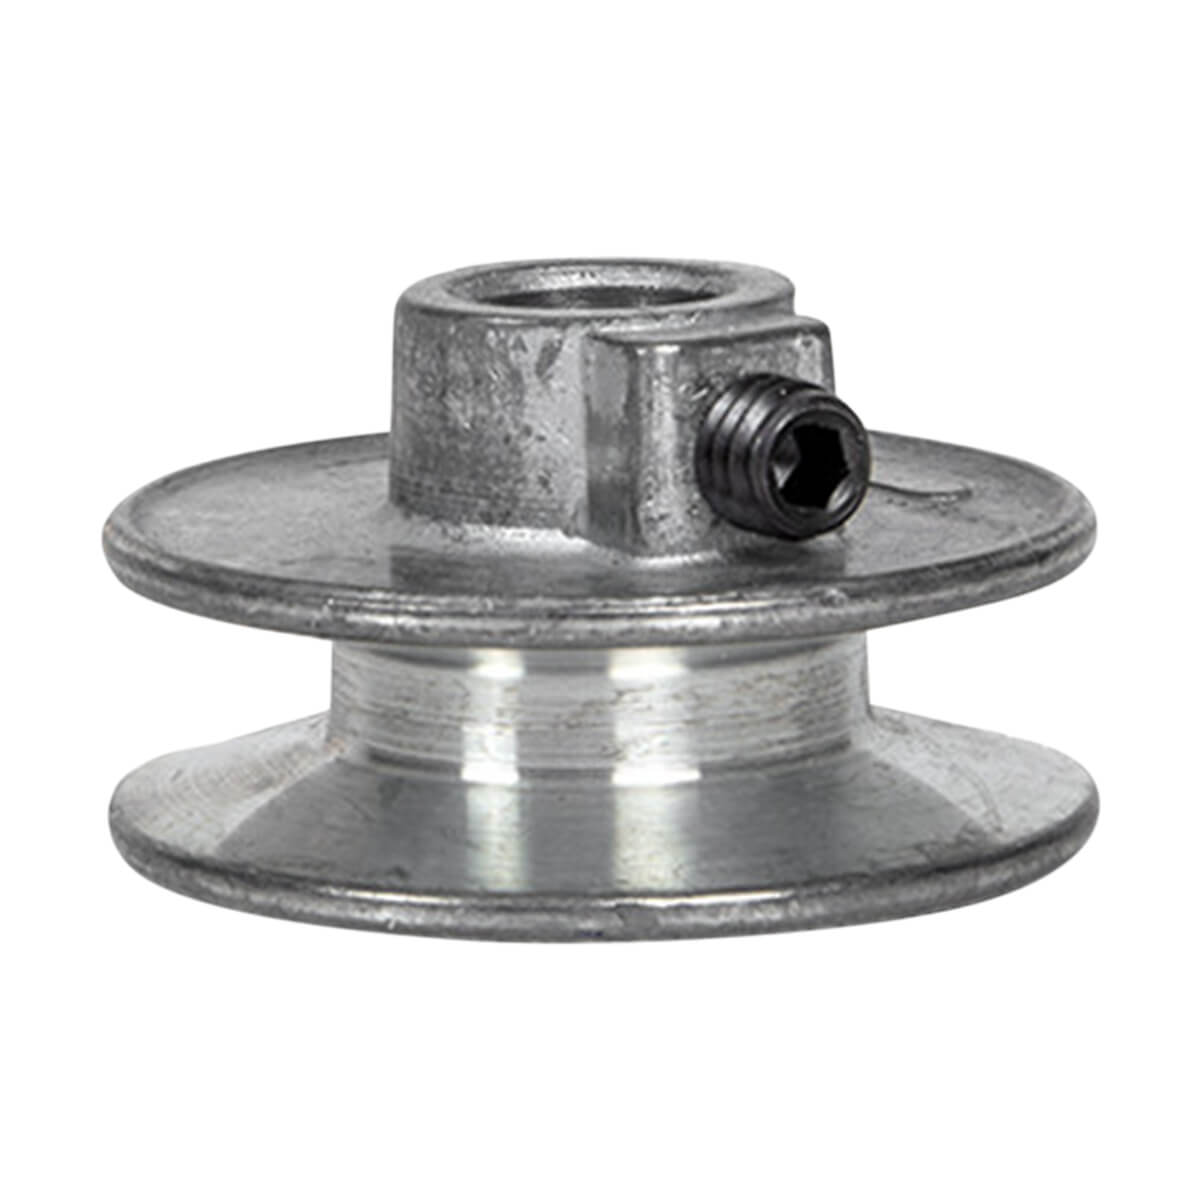 "Aluminum Pulley for A-Belts - 2"" x 5/8"""